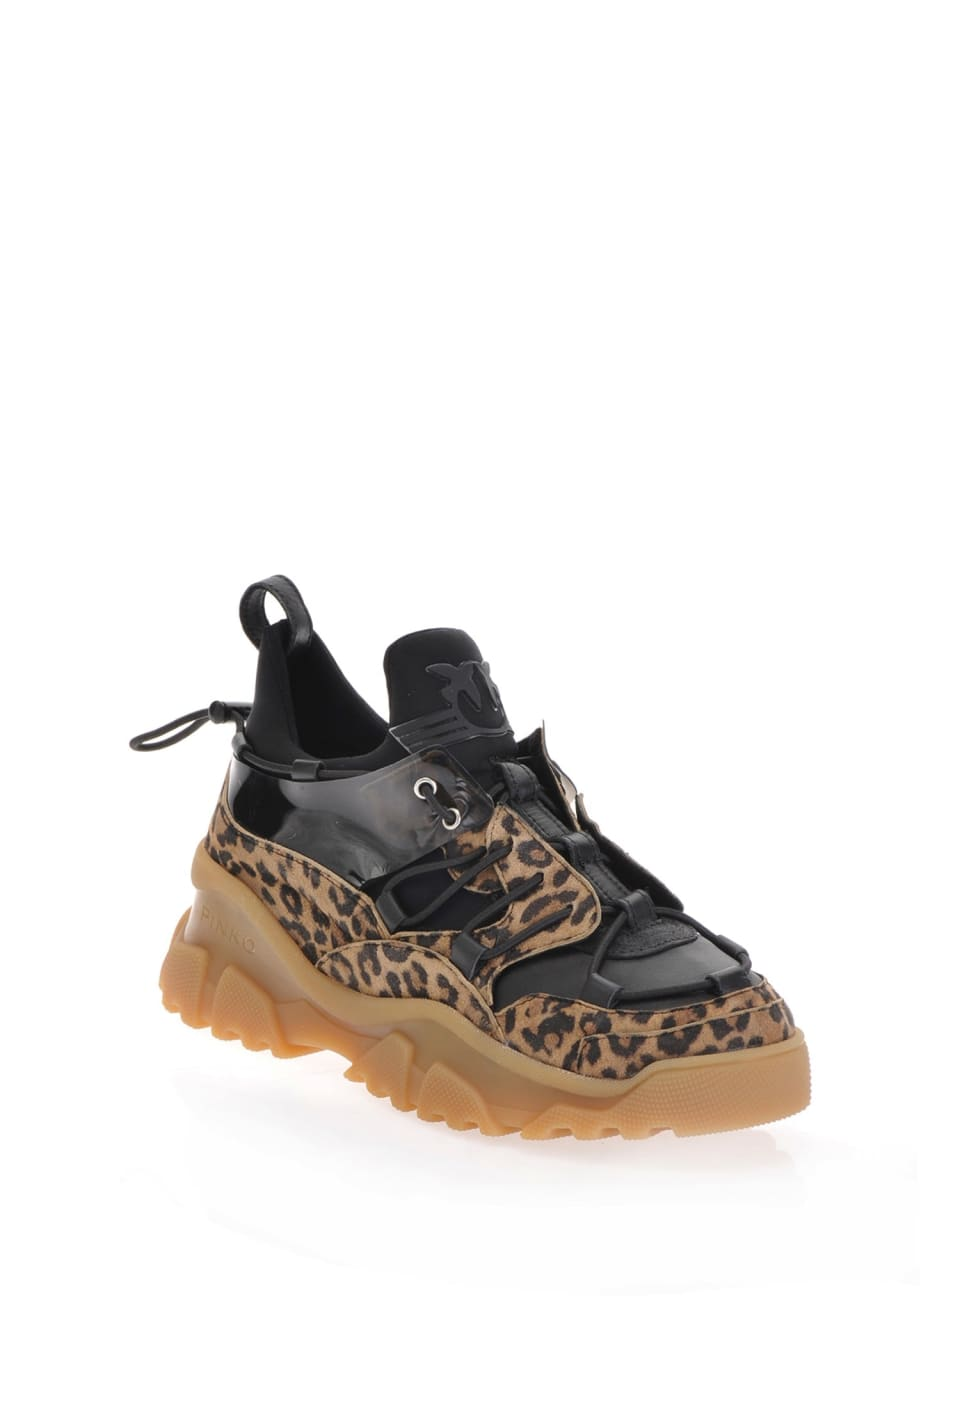 Zapatillas deportivas trekking con estampado animal